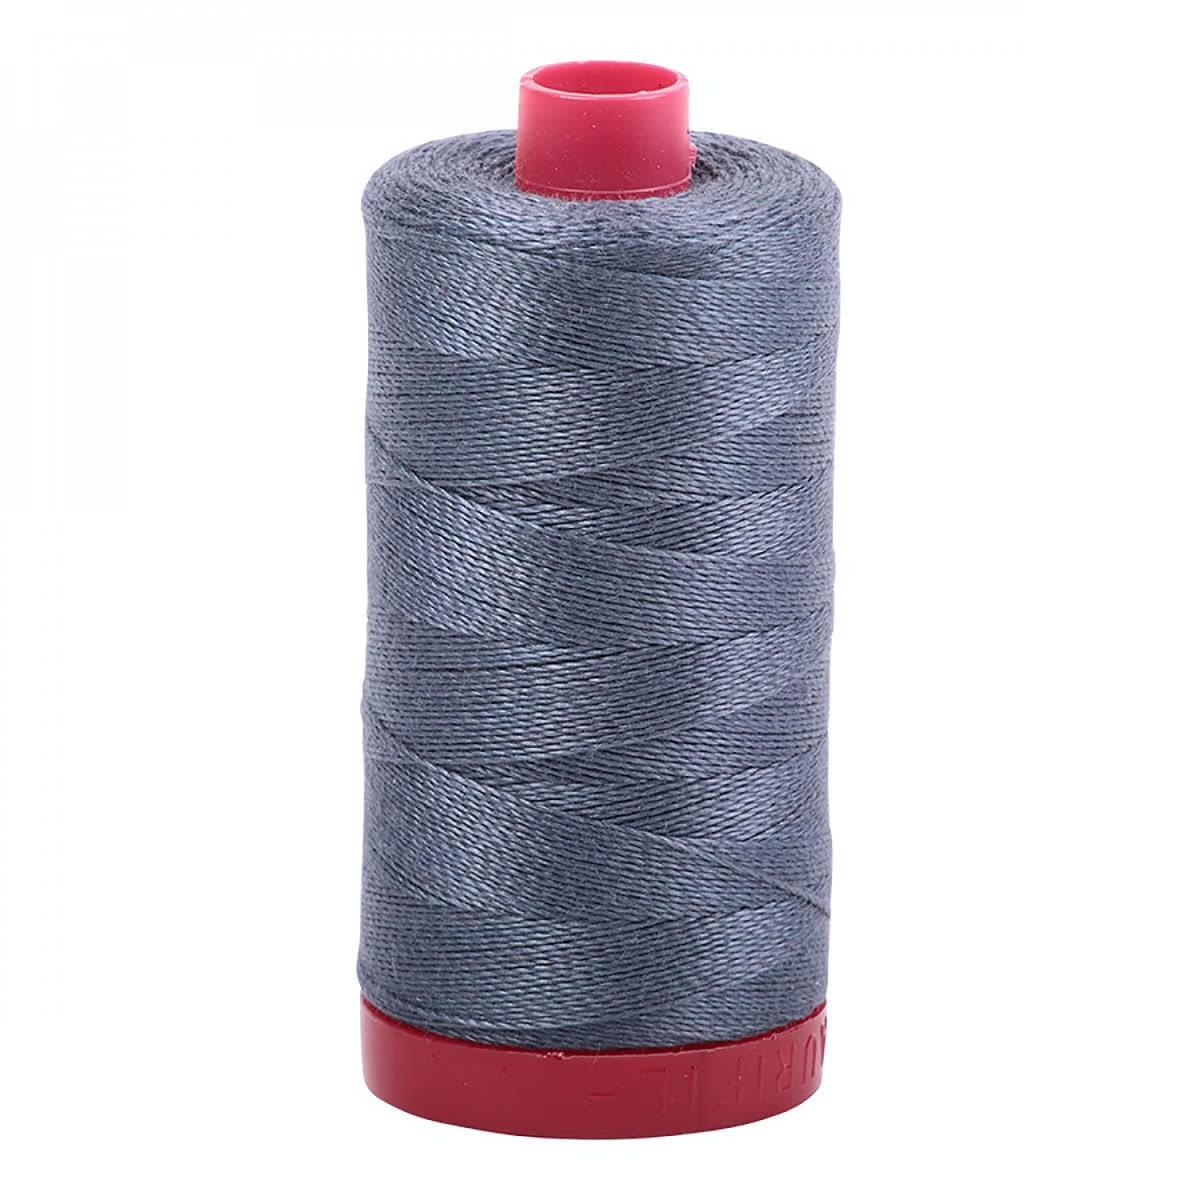 Aurifil Mako Cotton 12 Weight 2 Ply Large Spool 386 Yards 325 Meters Black